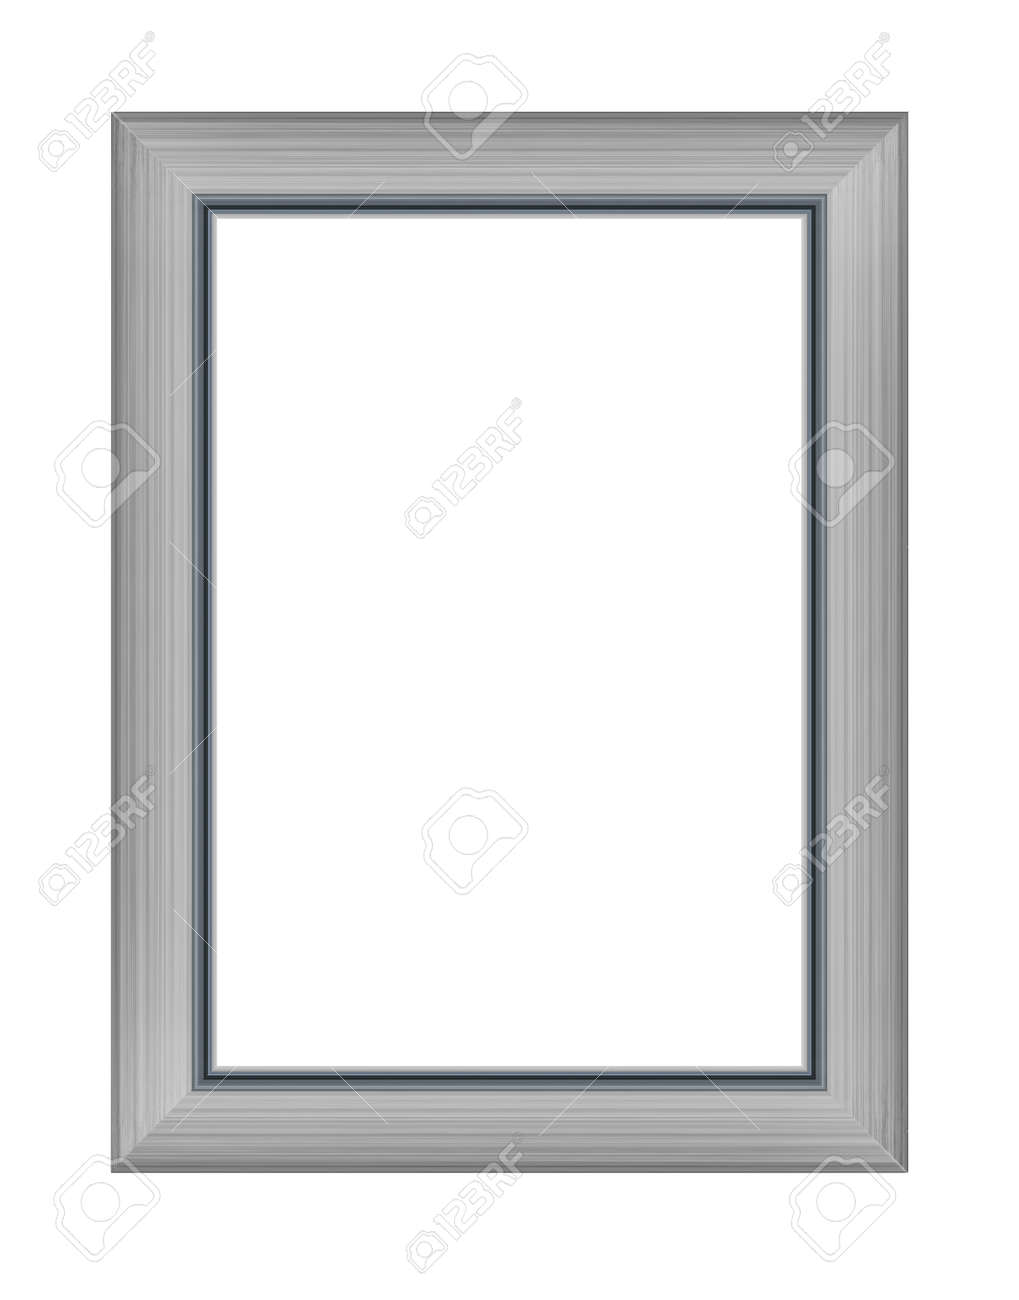 wooden frame for picture or photo, frame for a mirror isolated on white background. With clipping path - 170242737